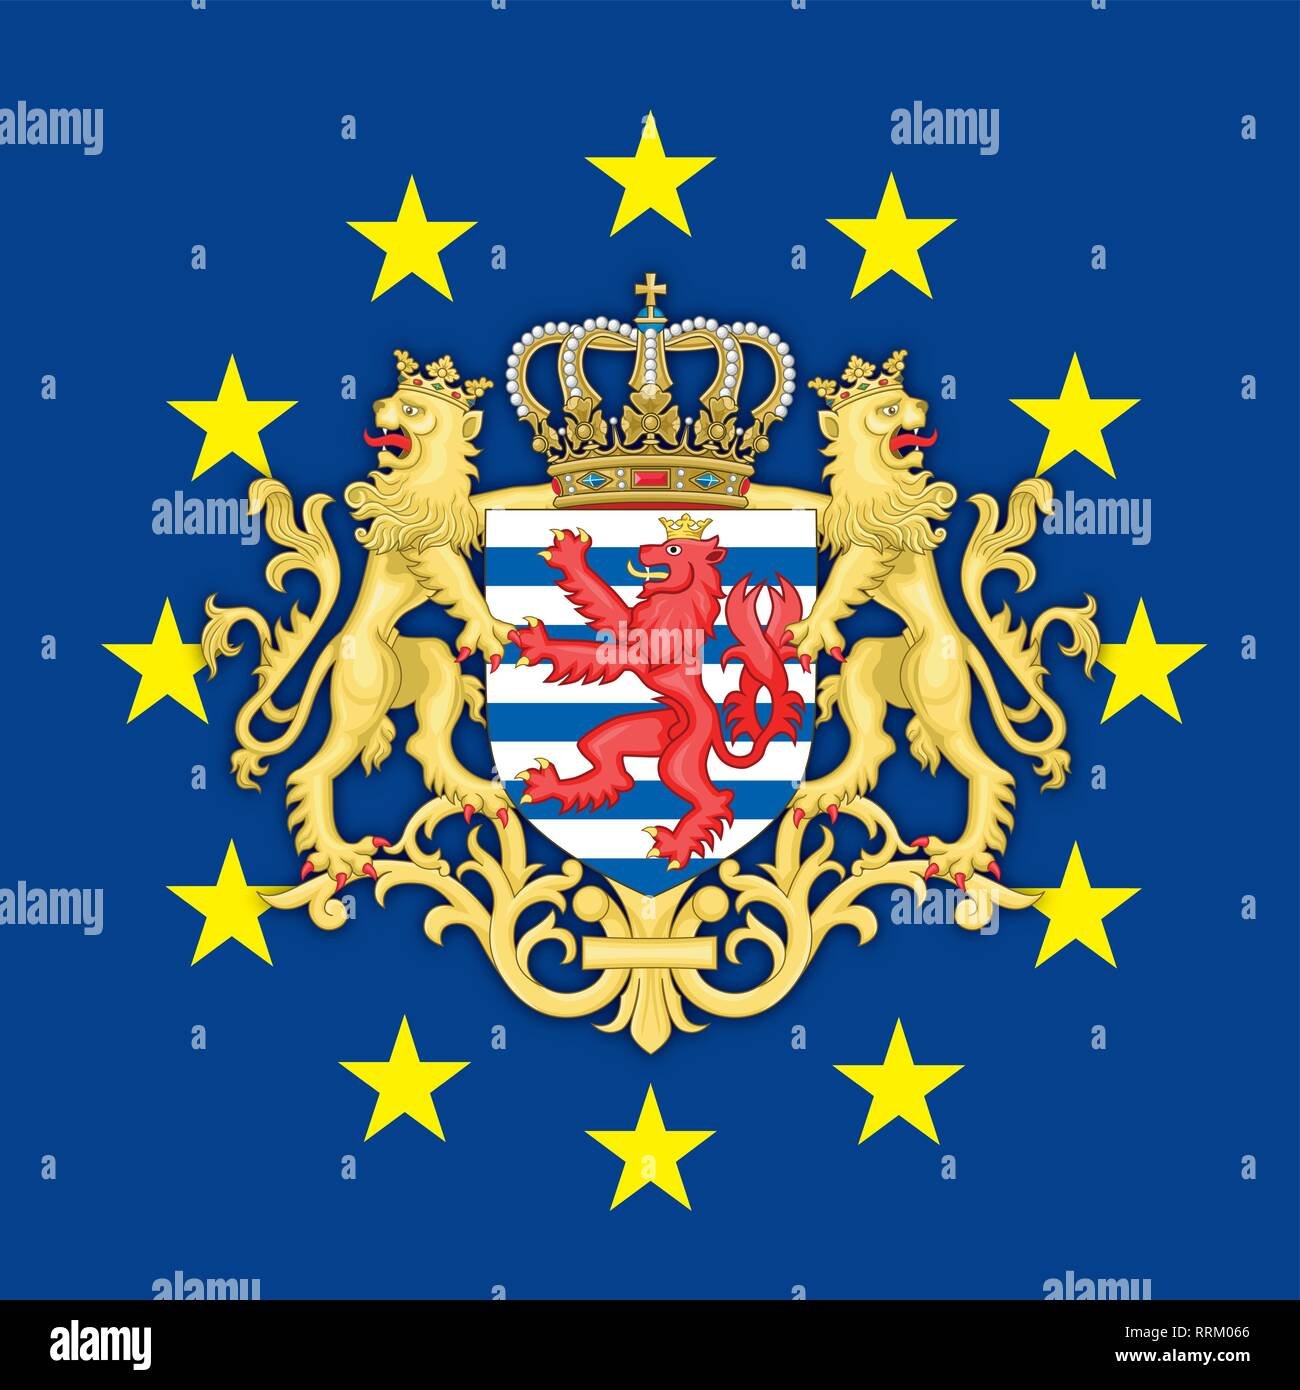 Luxembourg coat of arms on the European Union flag, vector illustration - Stock Image